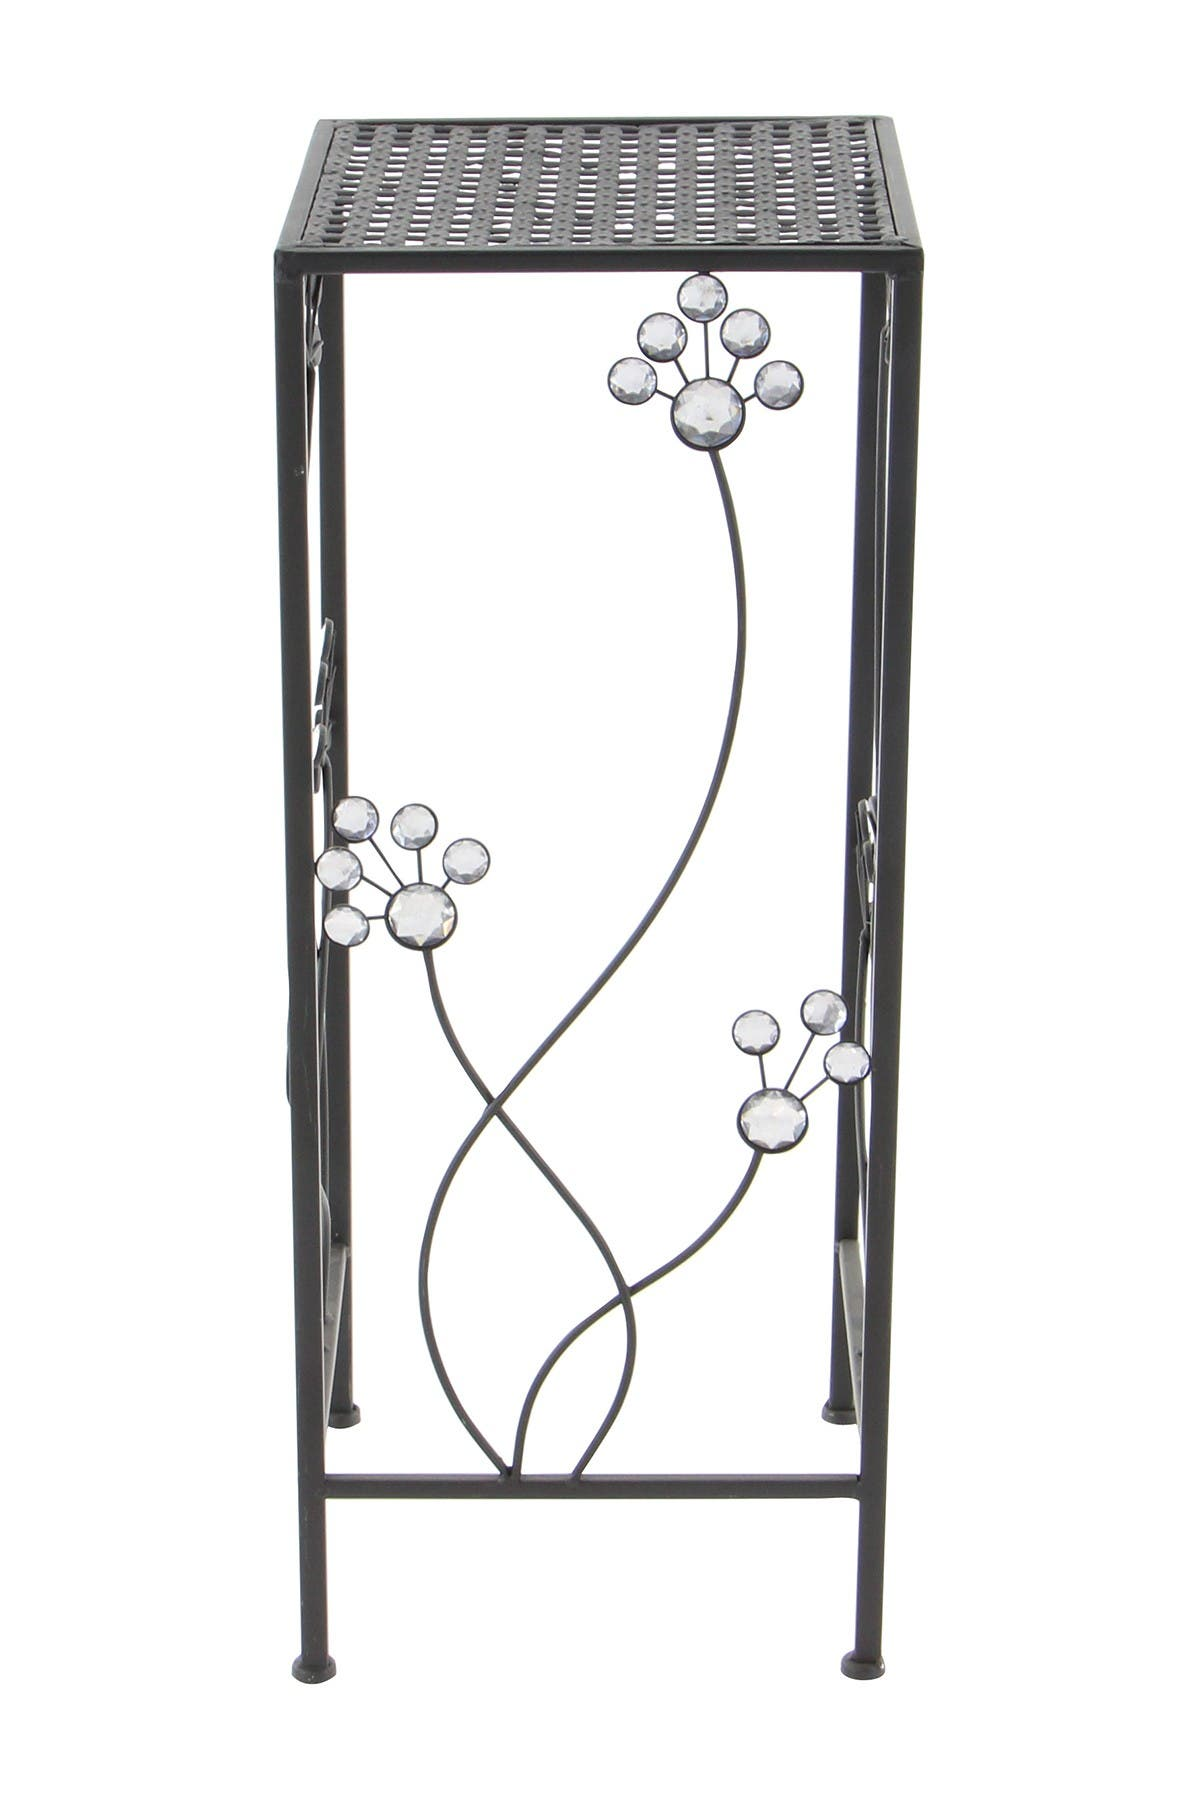 Image of Willow Row Metal Plant Stands - Set of 3